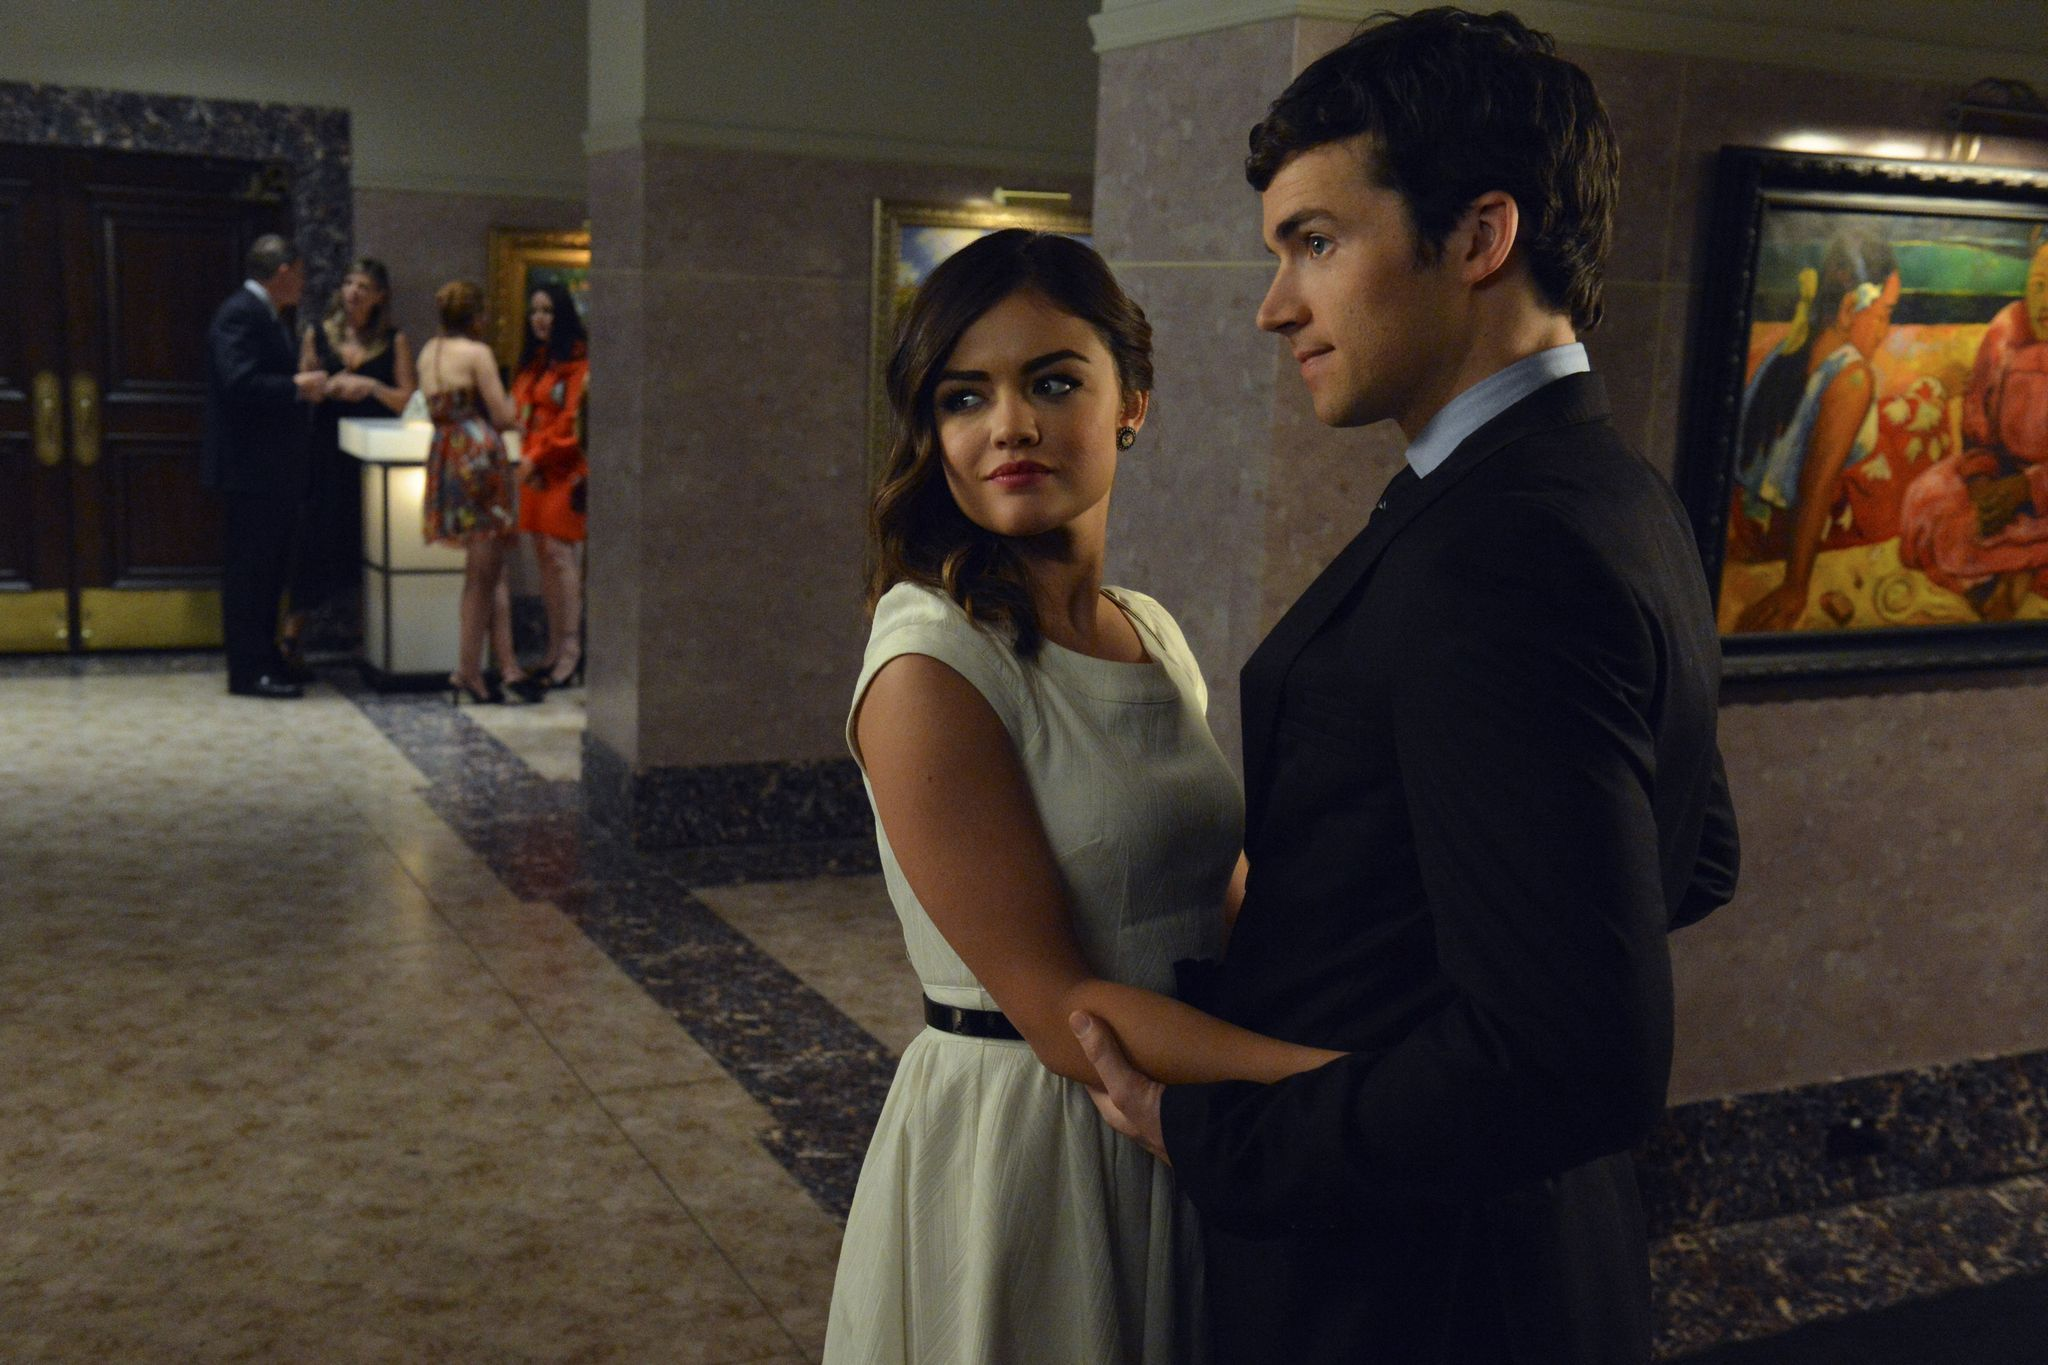 Aria Montgomery and Ezra Fitz Pretty Little Liars Season 3 Episode 8 Stolen Kisses